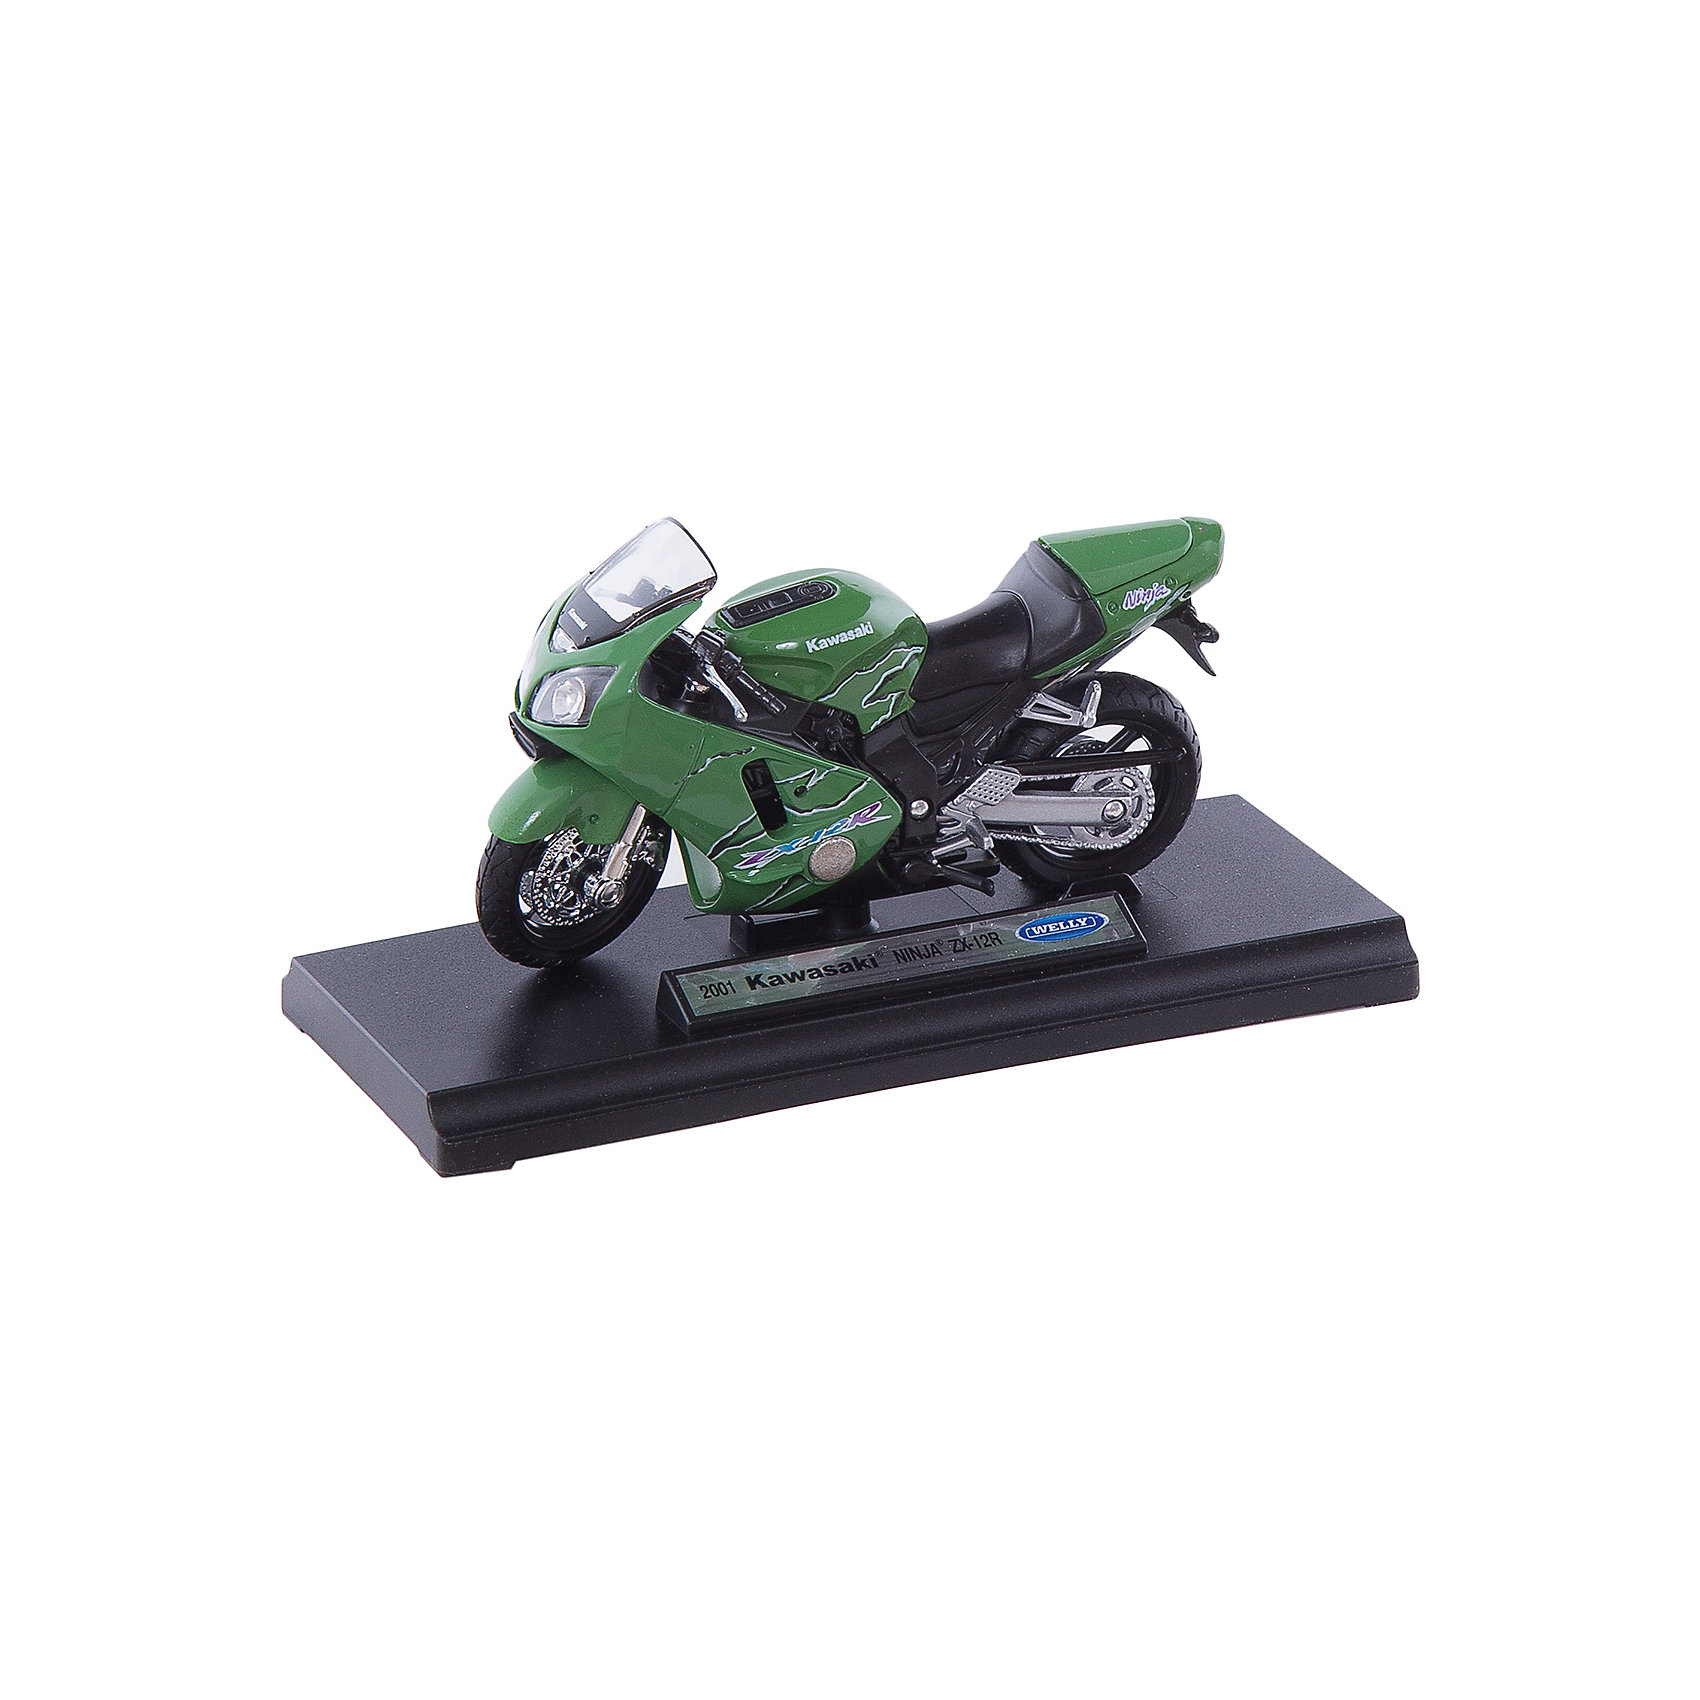 Welly Welly Модель мотоцикла 1:18 MOTORCYCLE / KAWASAKI 2001 NINJA  ZX-12R fit for kawasaki ninja zx10r zx 10r 2008 2009 2010 08 09 10 motorcycle fairing kit high quality abs plastic injection mold black